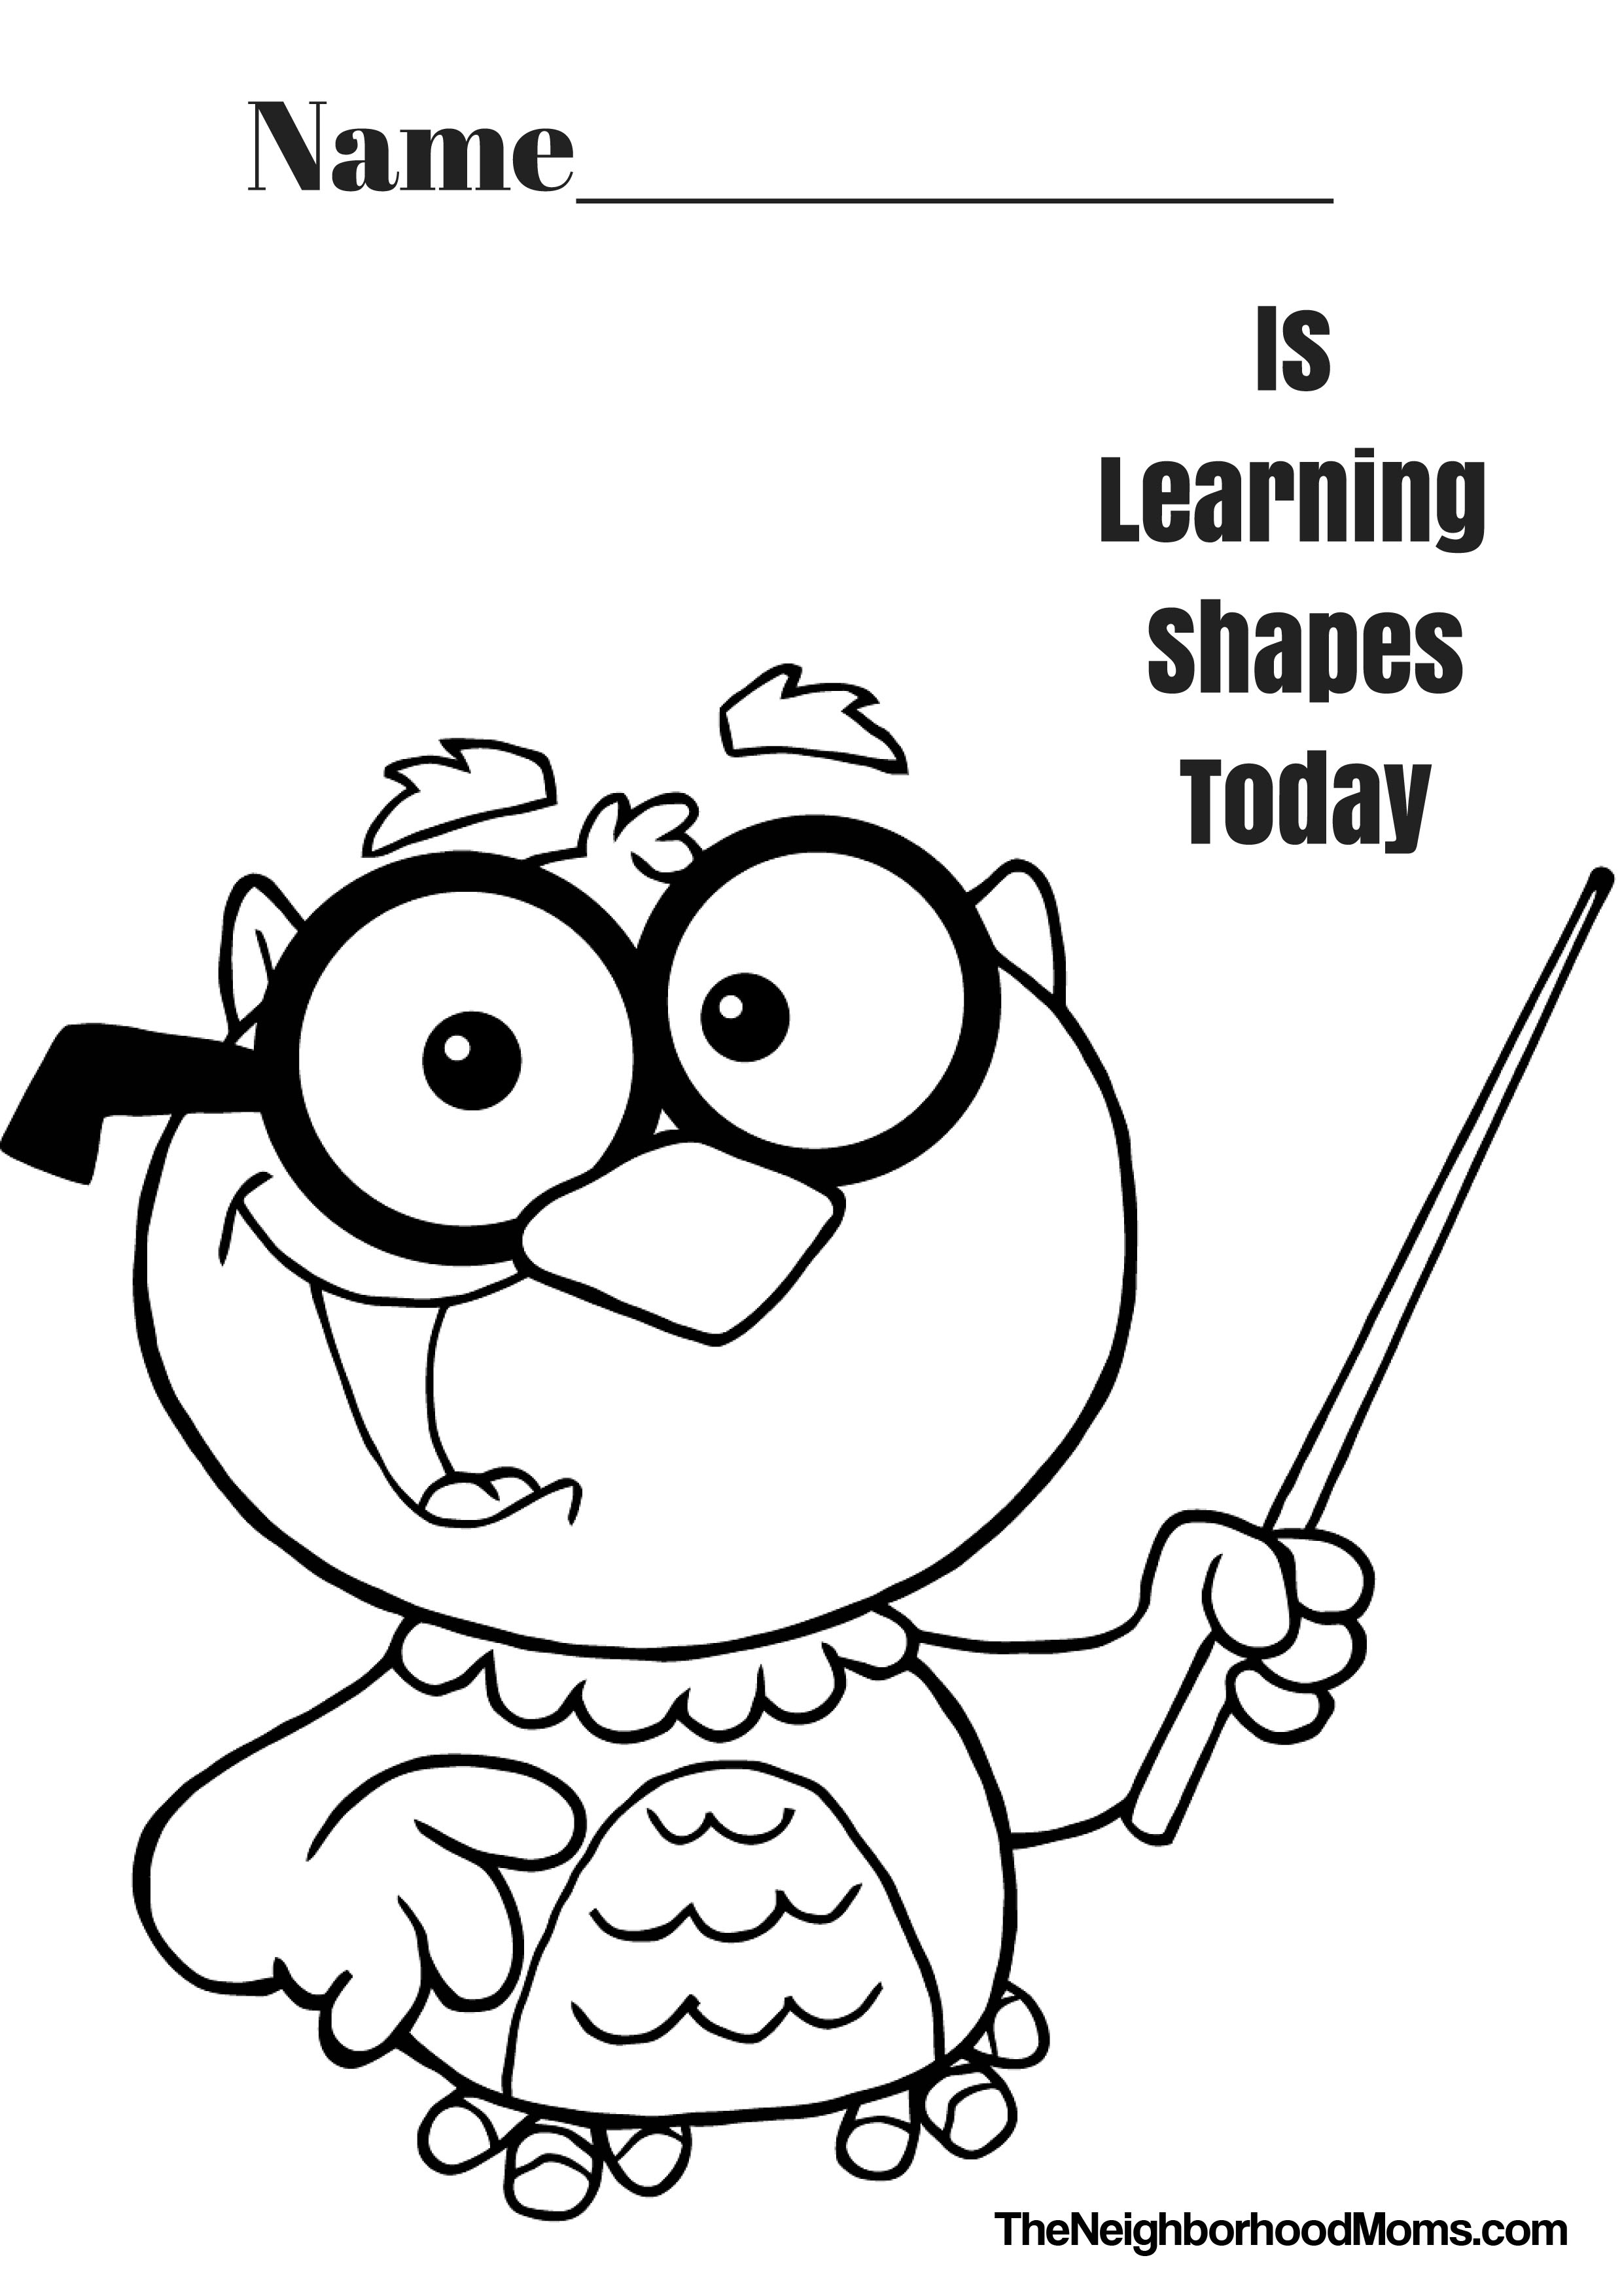 coloring pages of shapes free printable coloring pages as for me and my homestead shapes pages of coloring